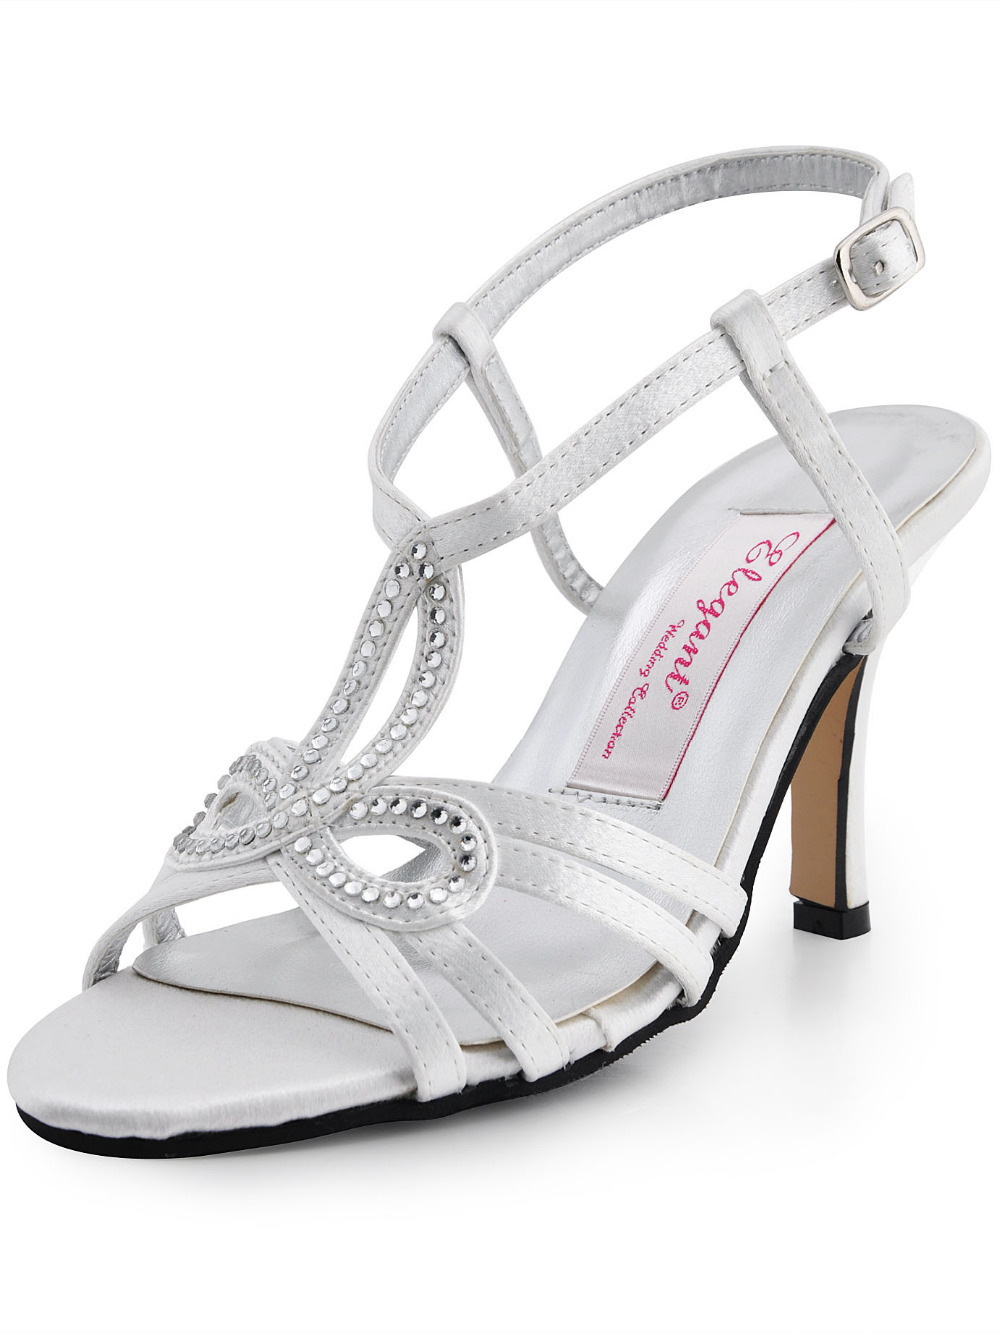 White Women Pumps Open Toe Bridal Sandals Cutout High Heels Satin Rhinstones Buckles Straps Wedding Shoes - Dragon River store